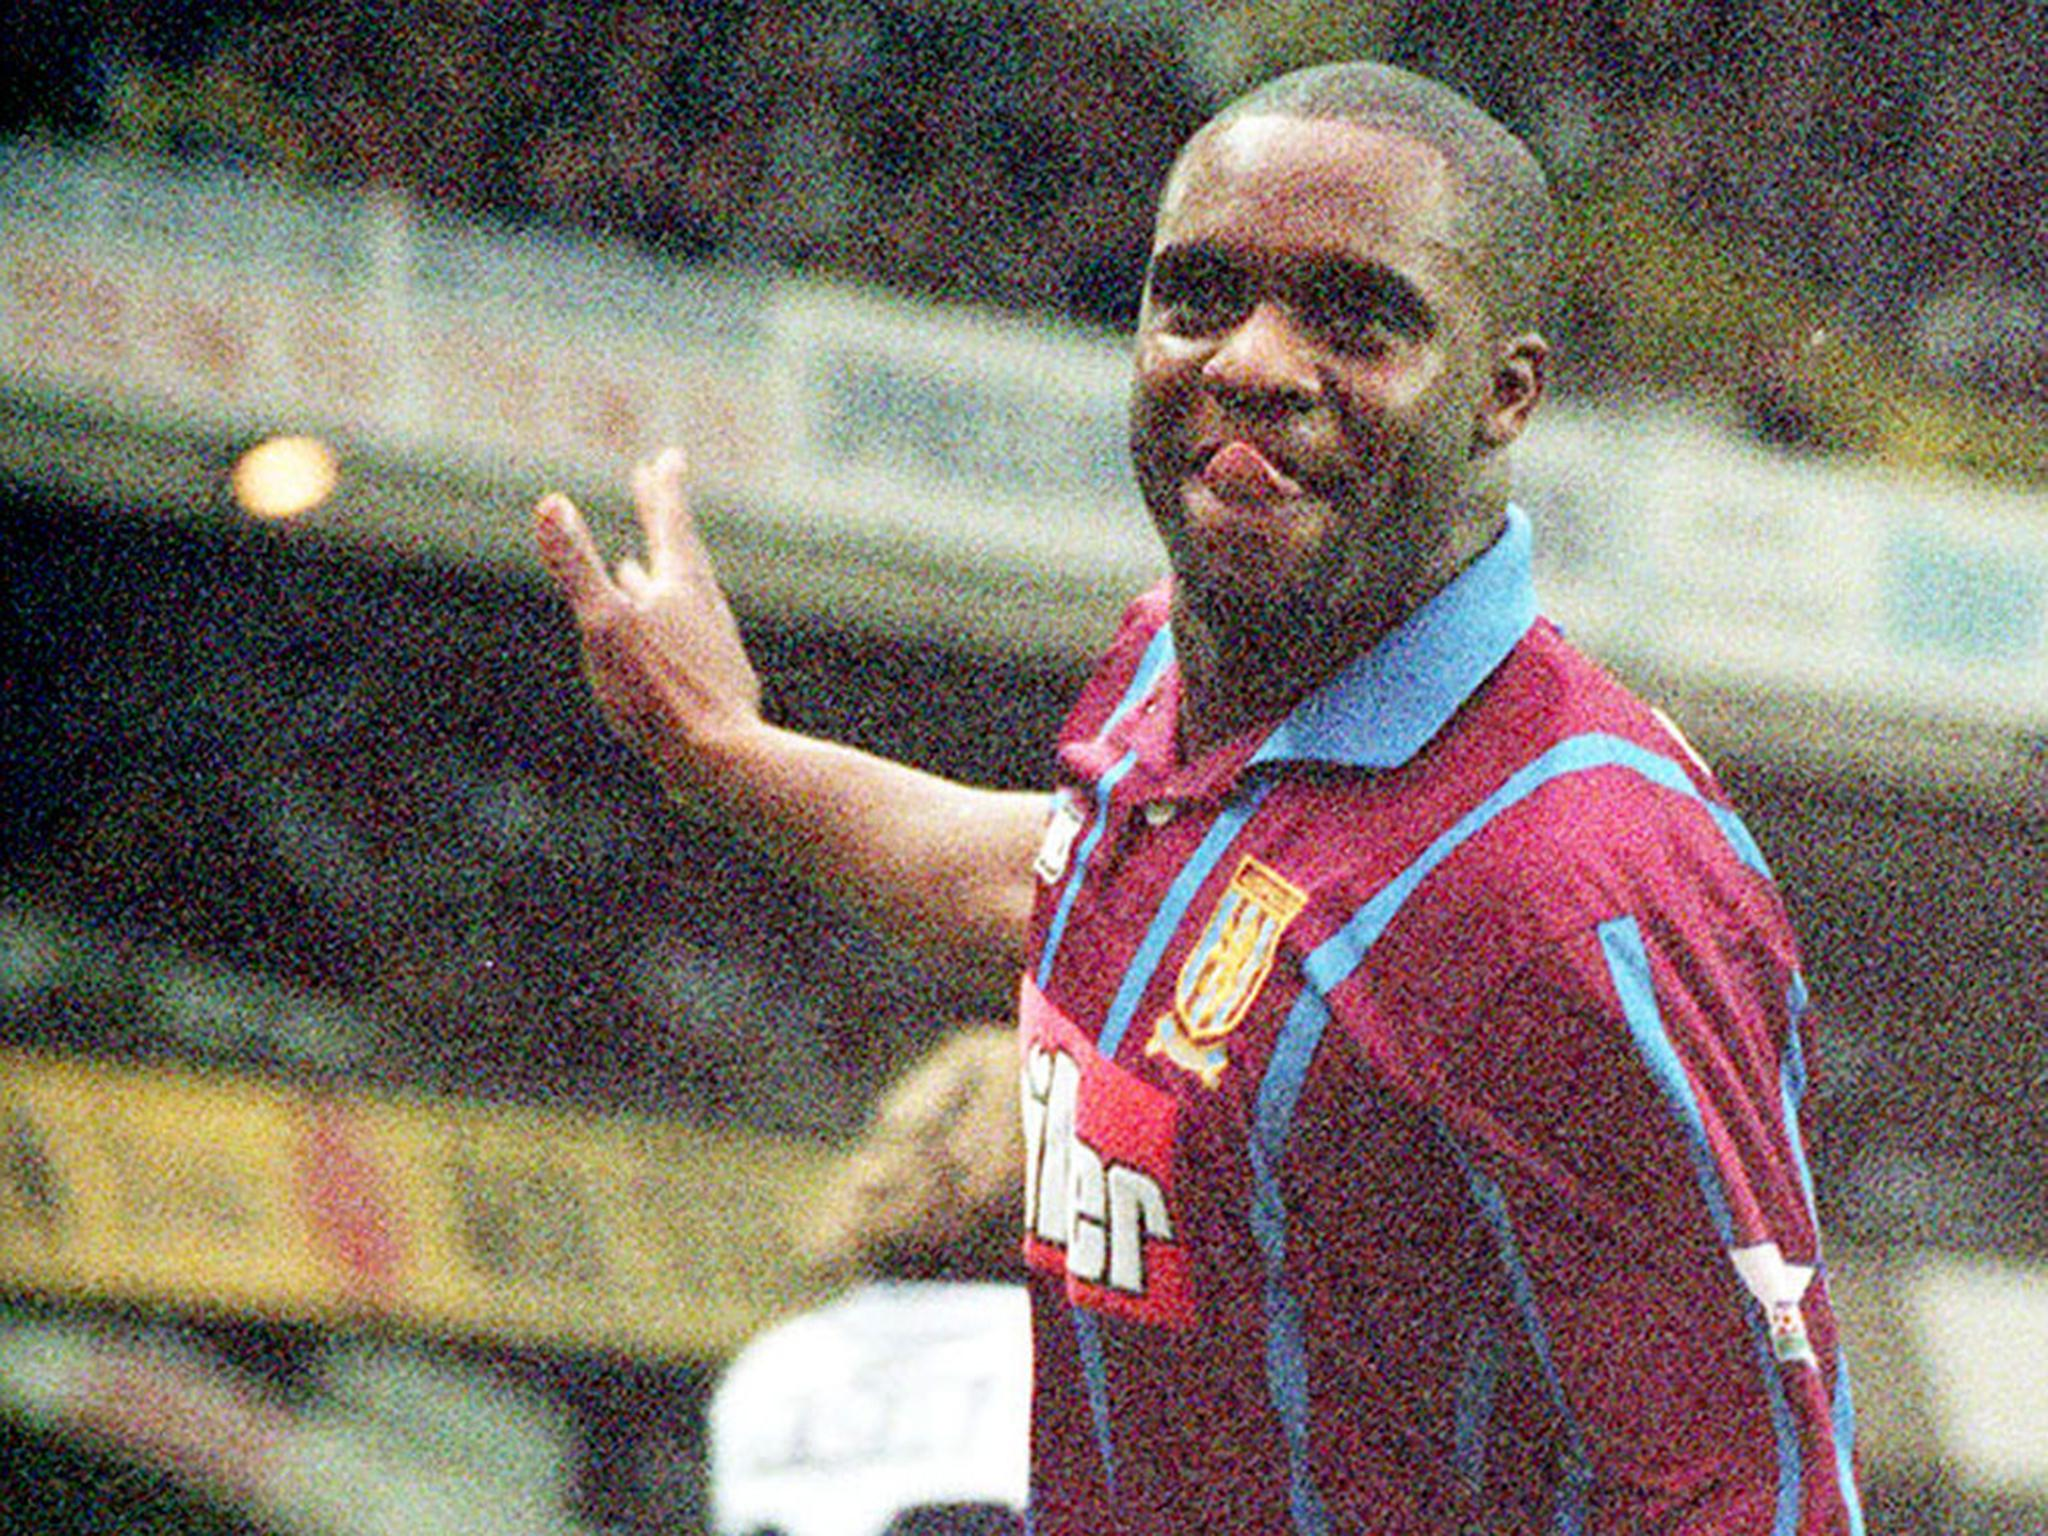 Dalian Atkinson: Police officer charged with murder of former Premier League footballer